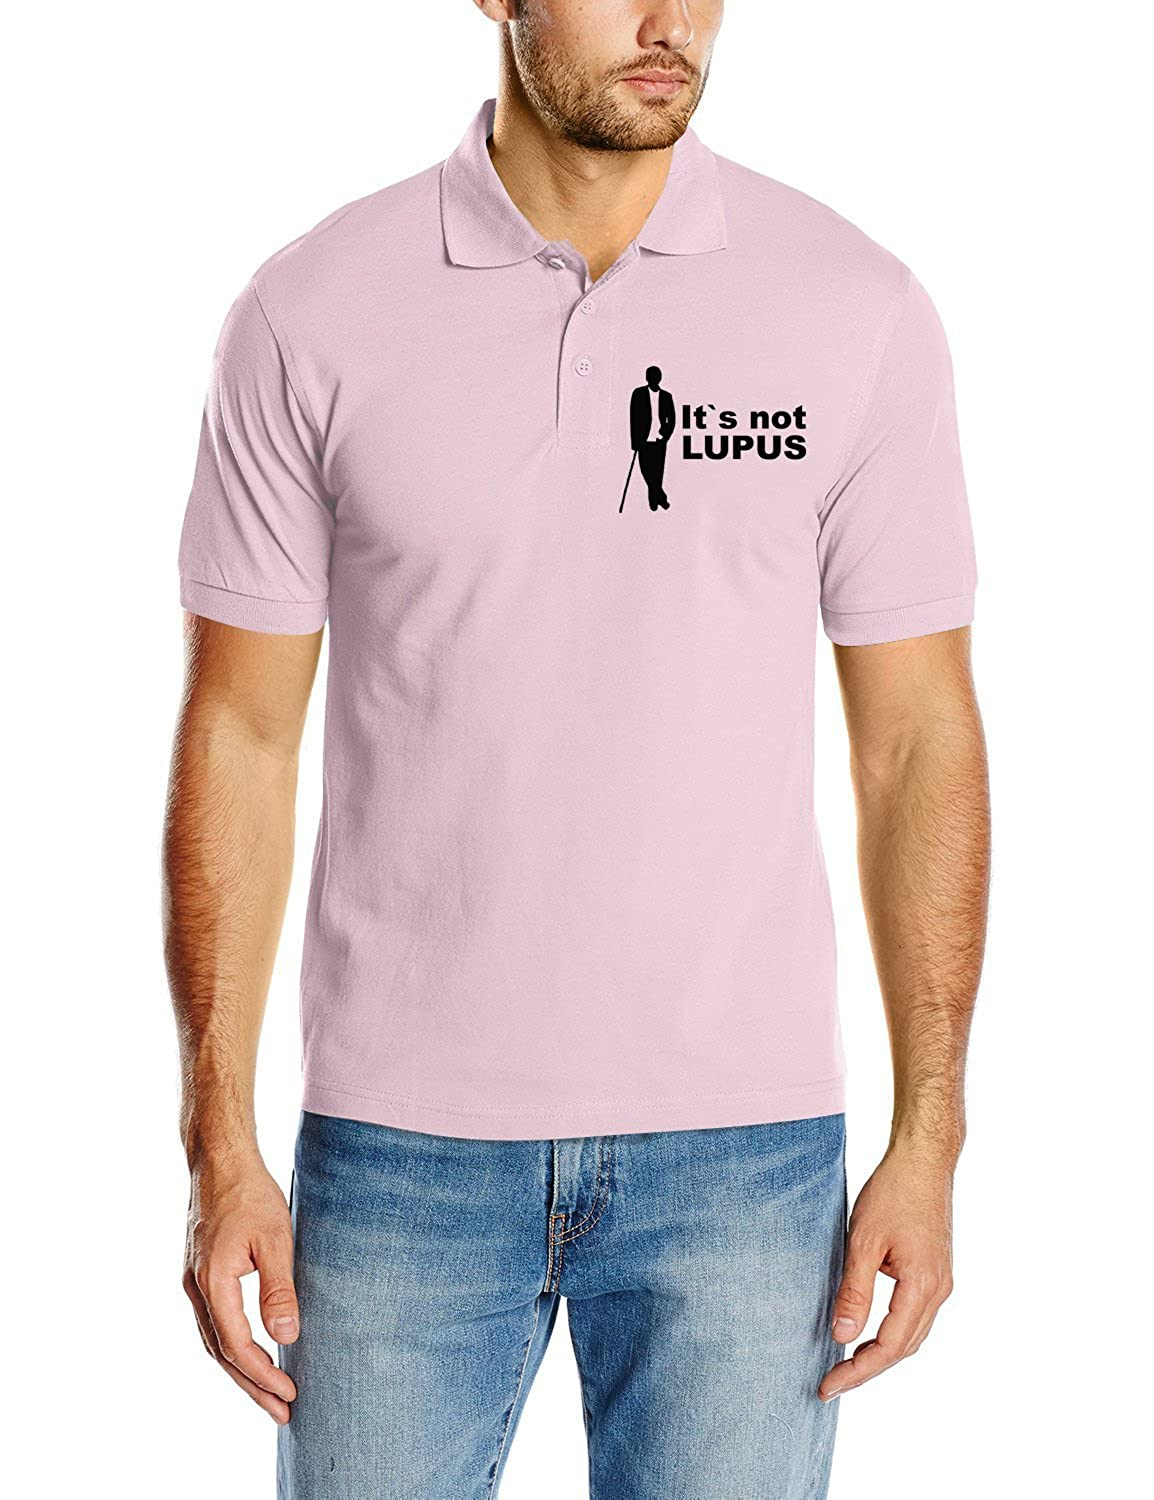 House It`s Not Lupus v2 Touchlines Poloshirt Dr Polo para Hombre